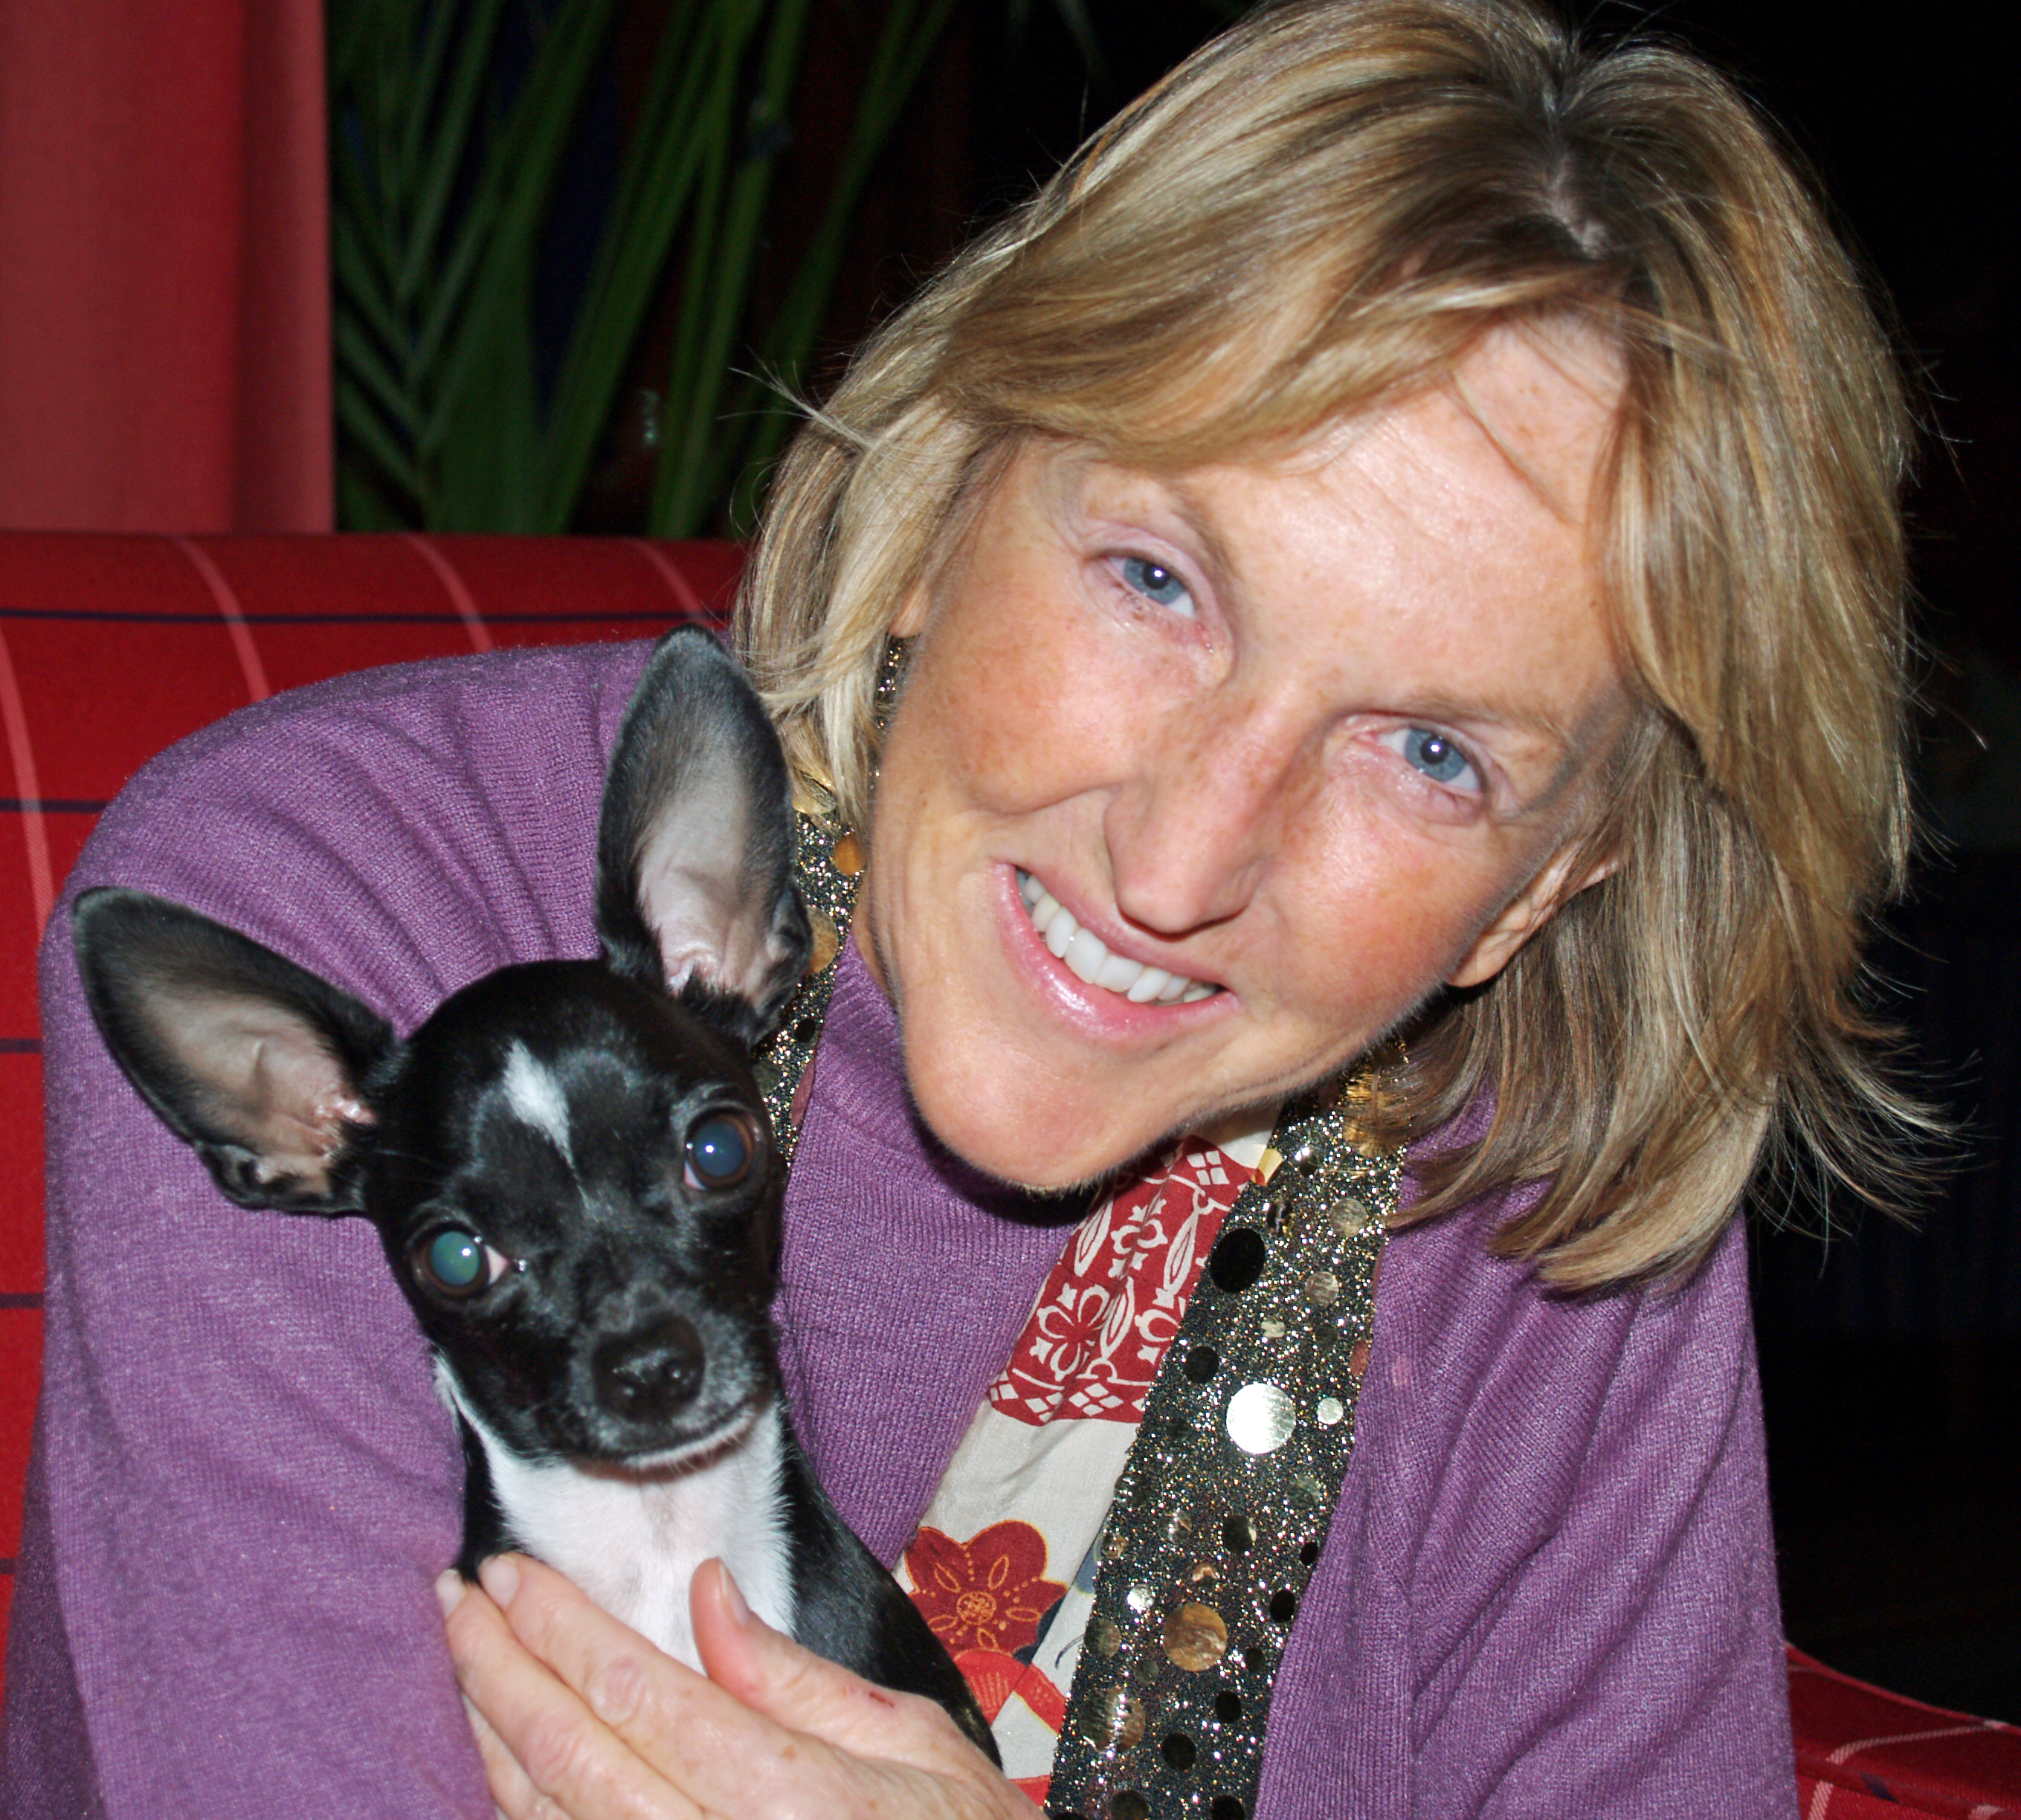 Ingrid Newkirk with Little Man, her photographer's [[chihuahua (dog)|chihuahua]], during [[wikinews:Ingrid Newkirk, co-founder of PETA, on animal rights and the film about her life|an interview for Wikinews]] in 2007.